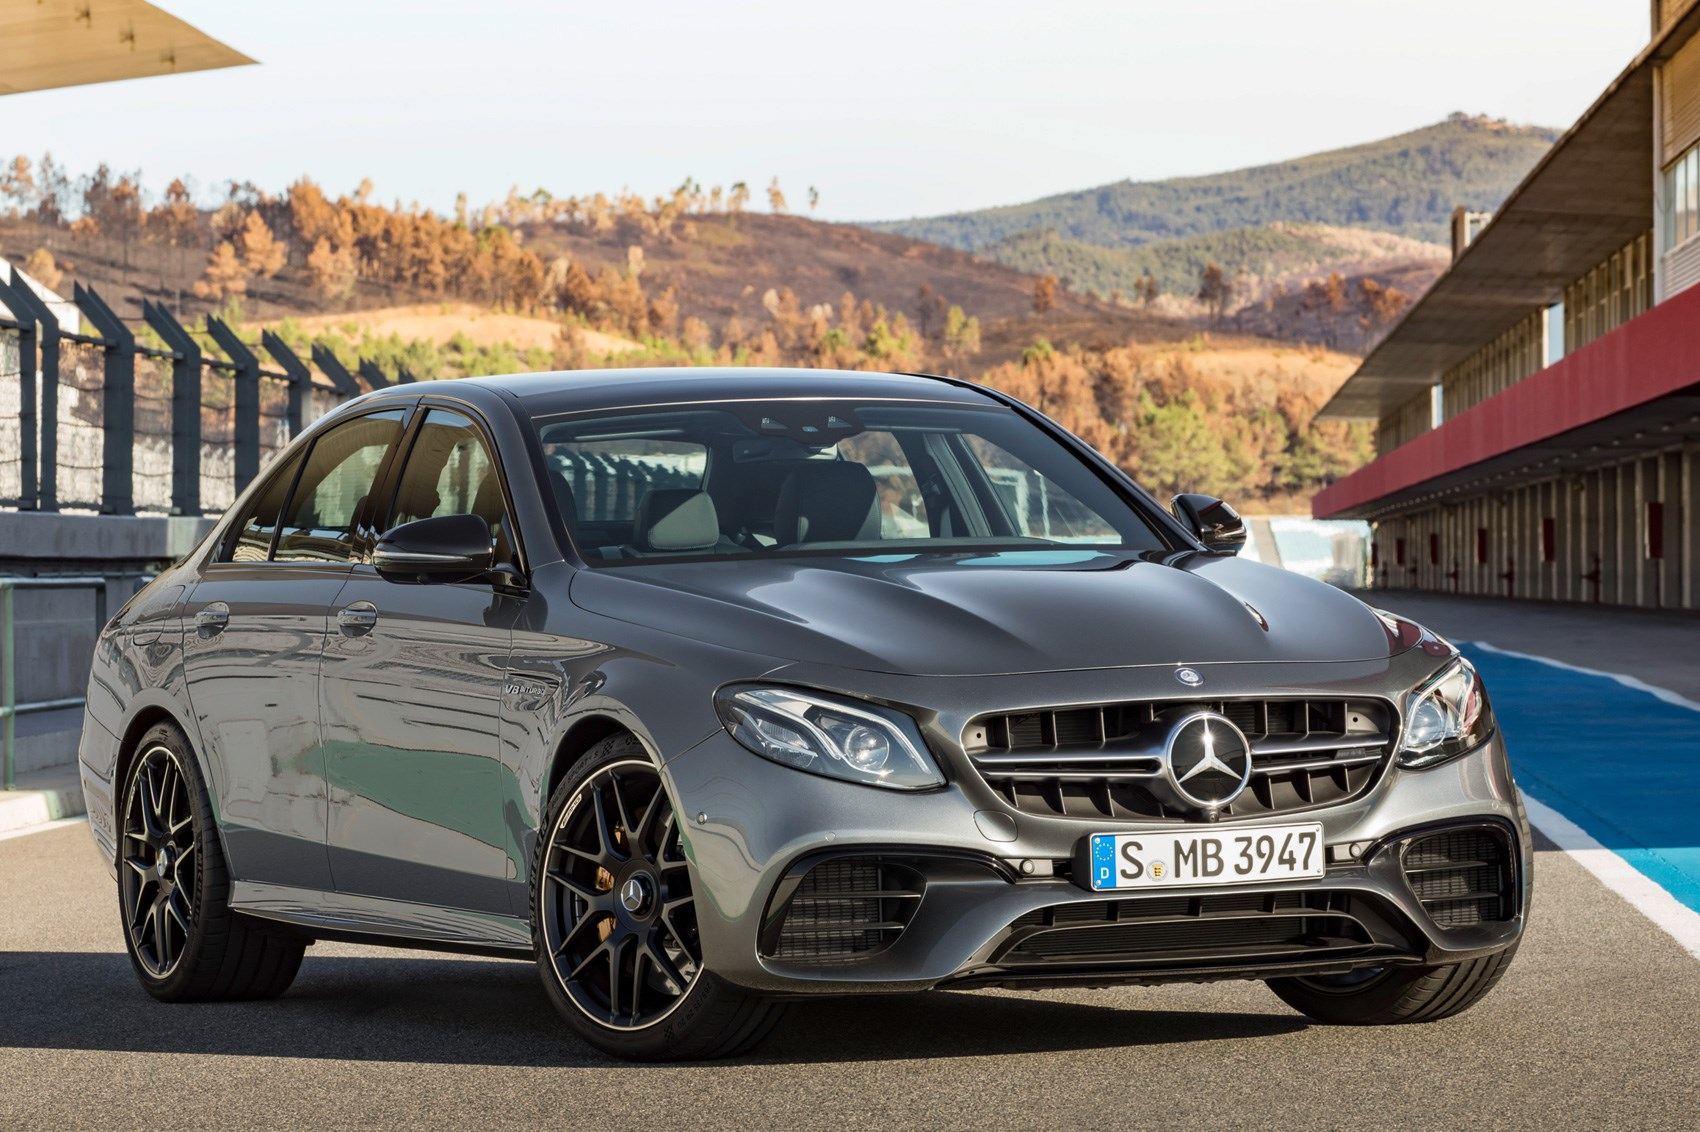 Suited and boosted 2017 mercedes amg e63 4matic revealed for Mercedes benz e 63 amg